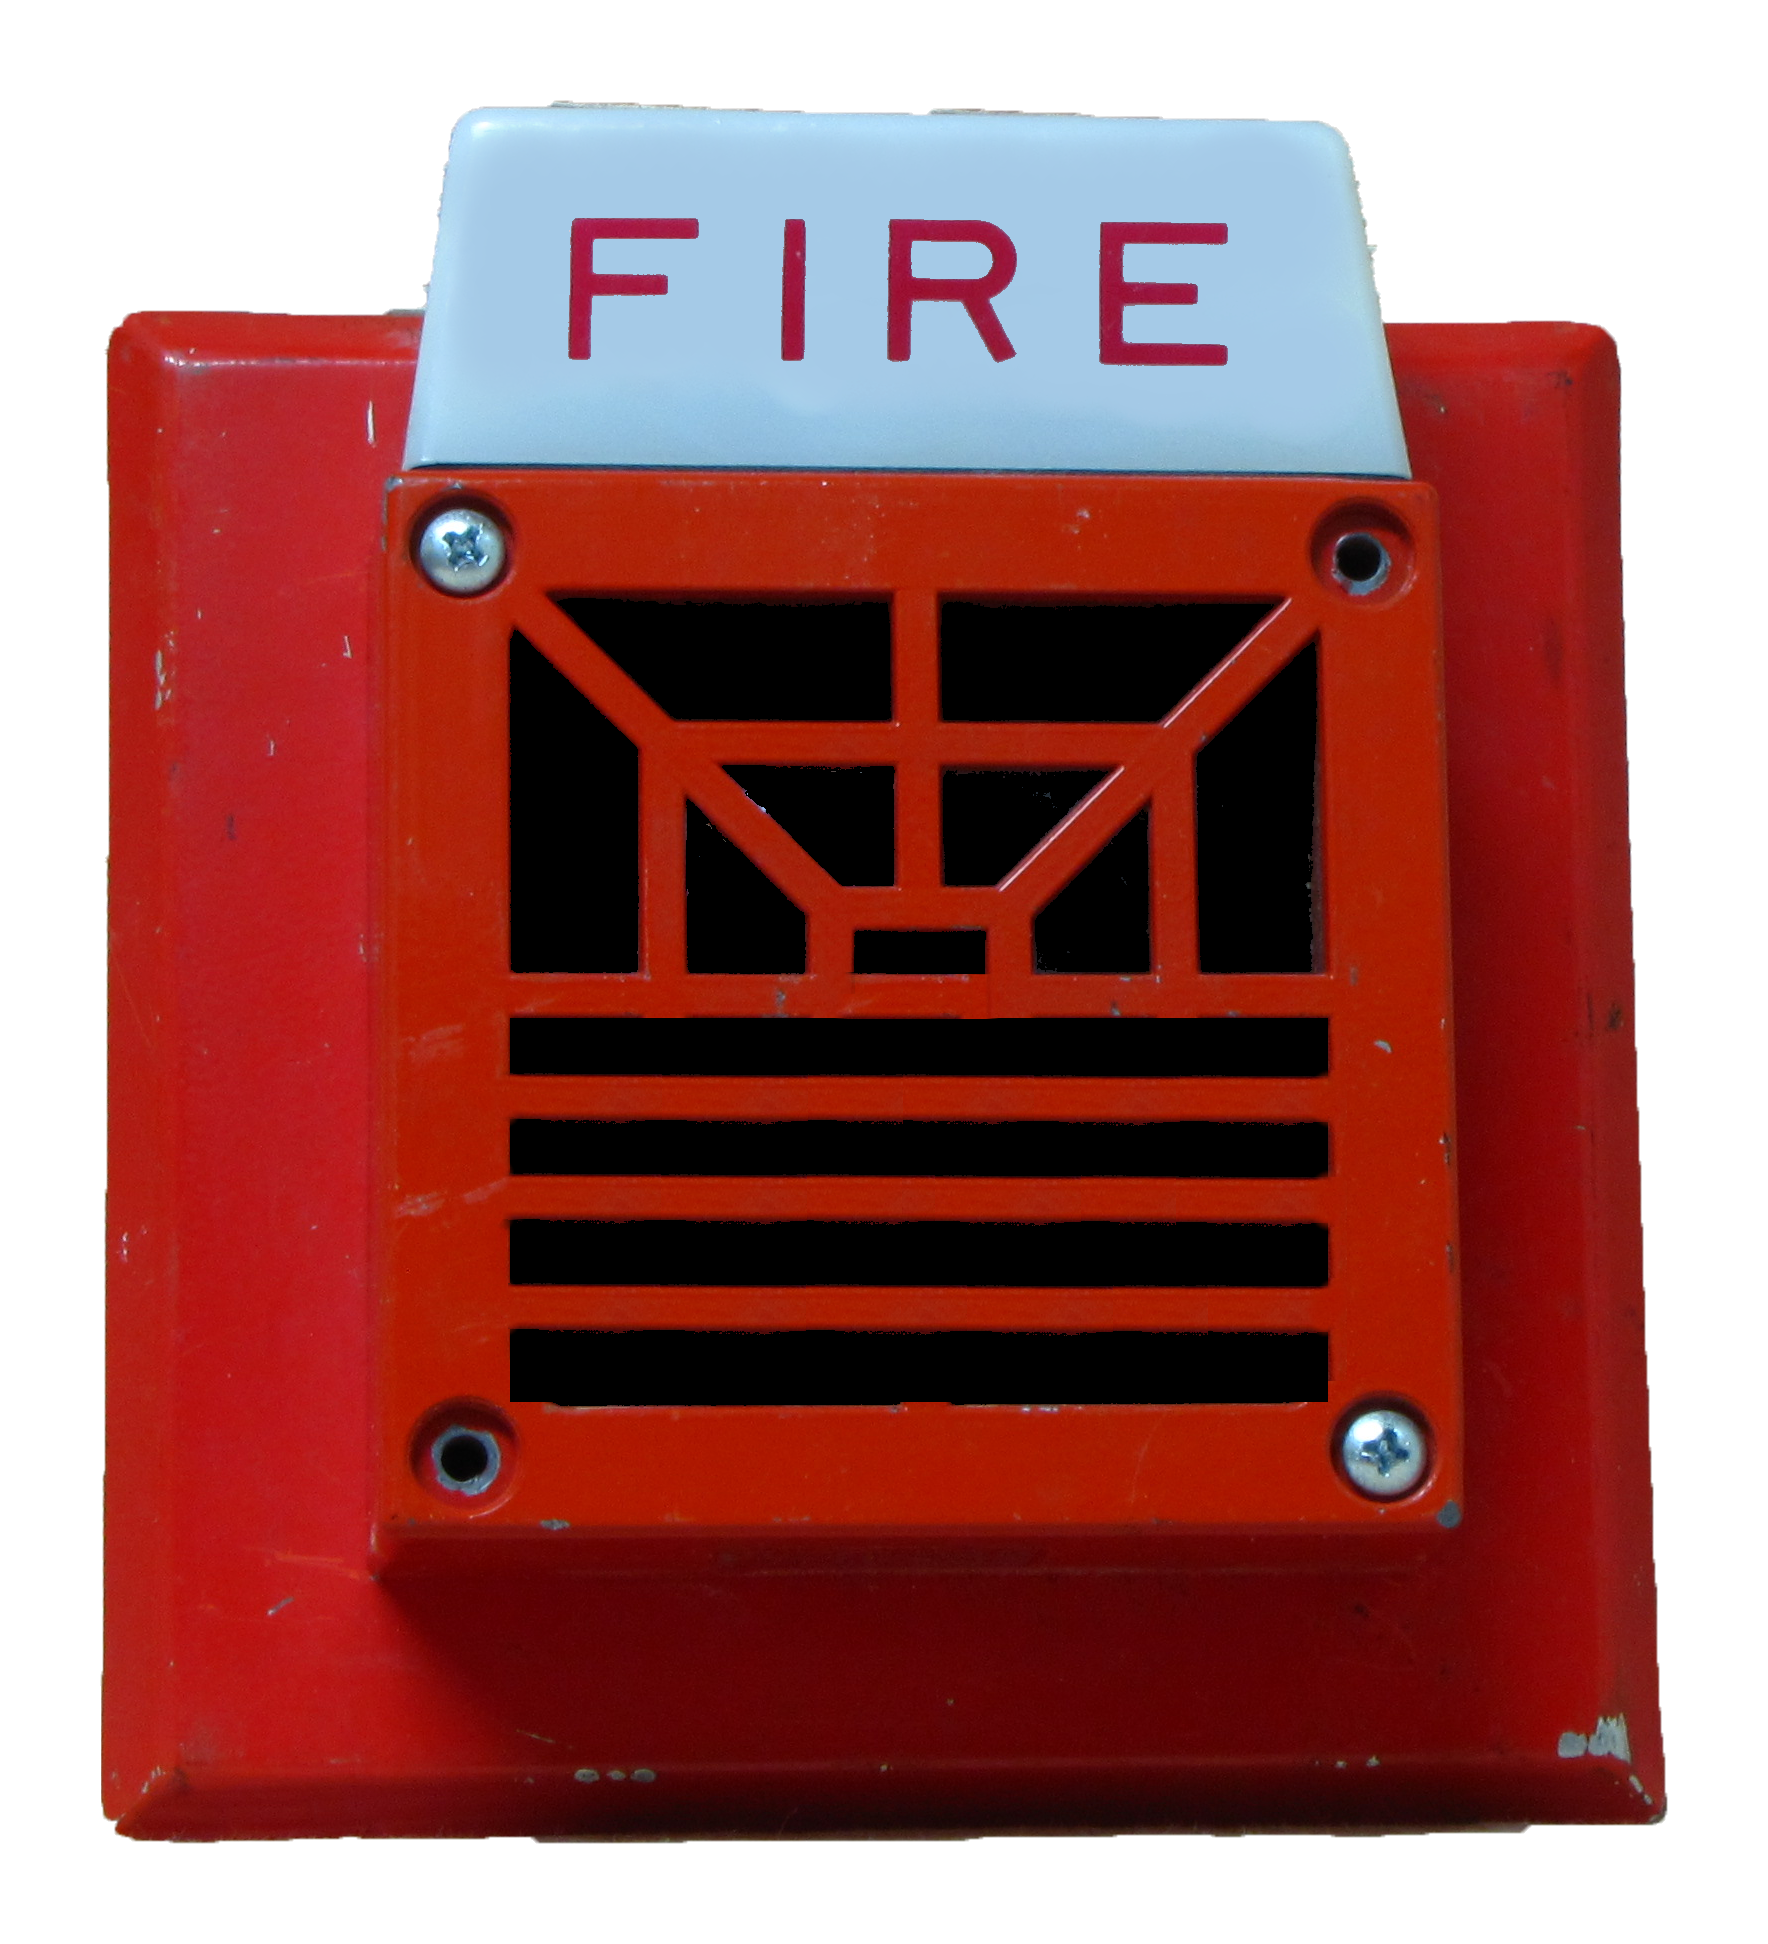 Your Winter Home Checklist 2 likewise How I Found The Best Free Alarm Clock Online together with Smoke alarms furthermore File Speaker Icon furthermore So There I Am Fast Asleep Staring Down A Fire Alarm. on loud smoke alarm sound